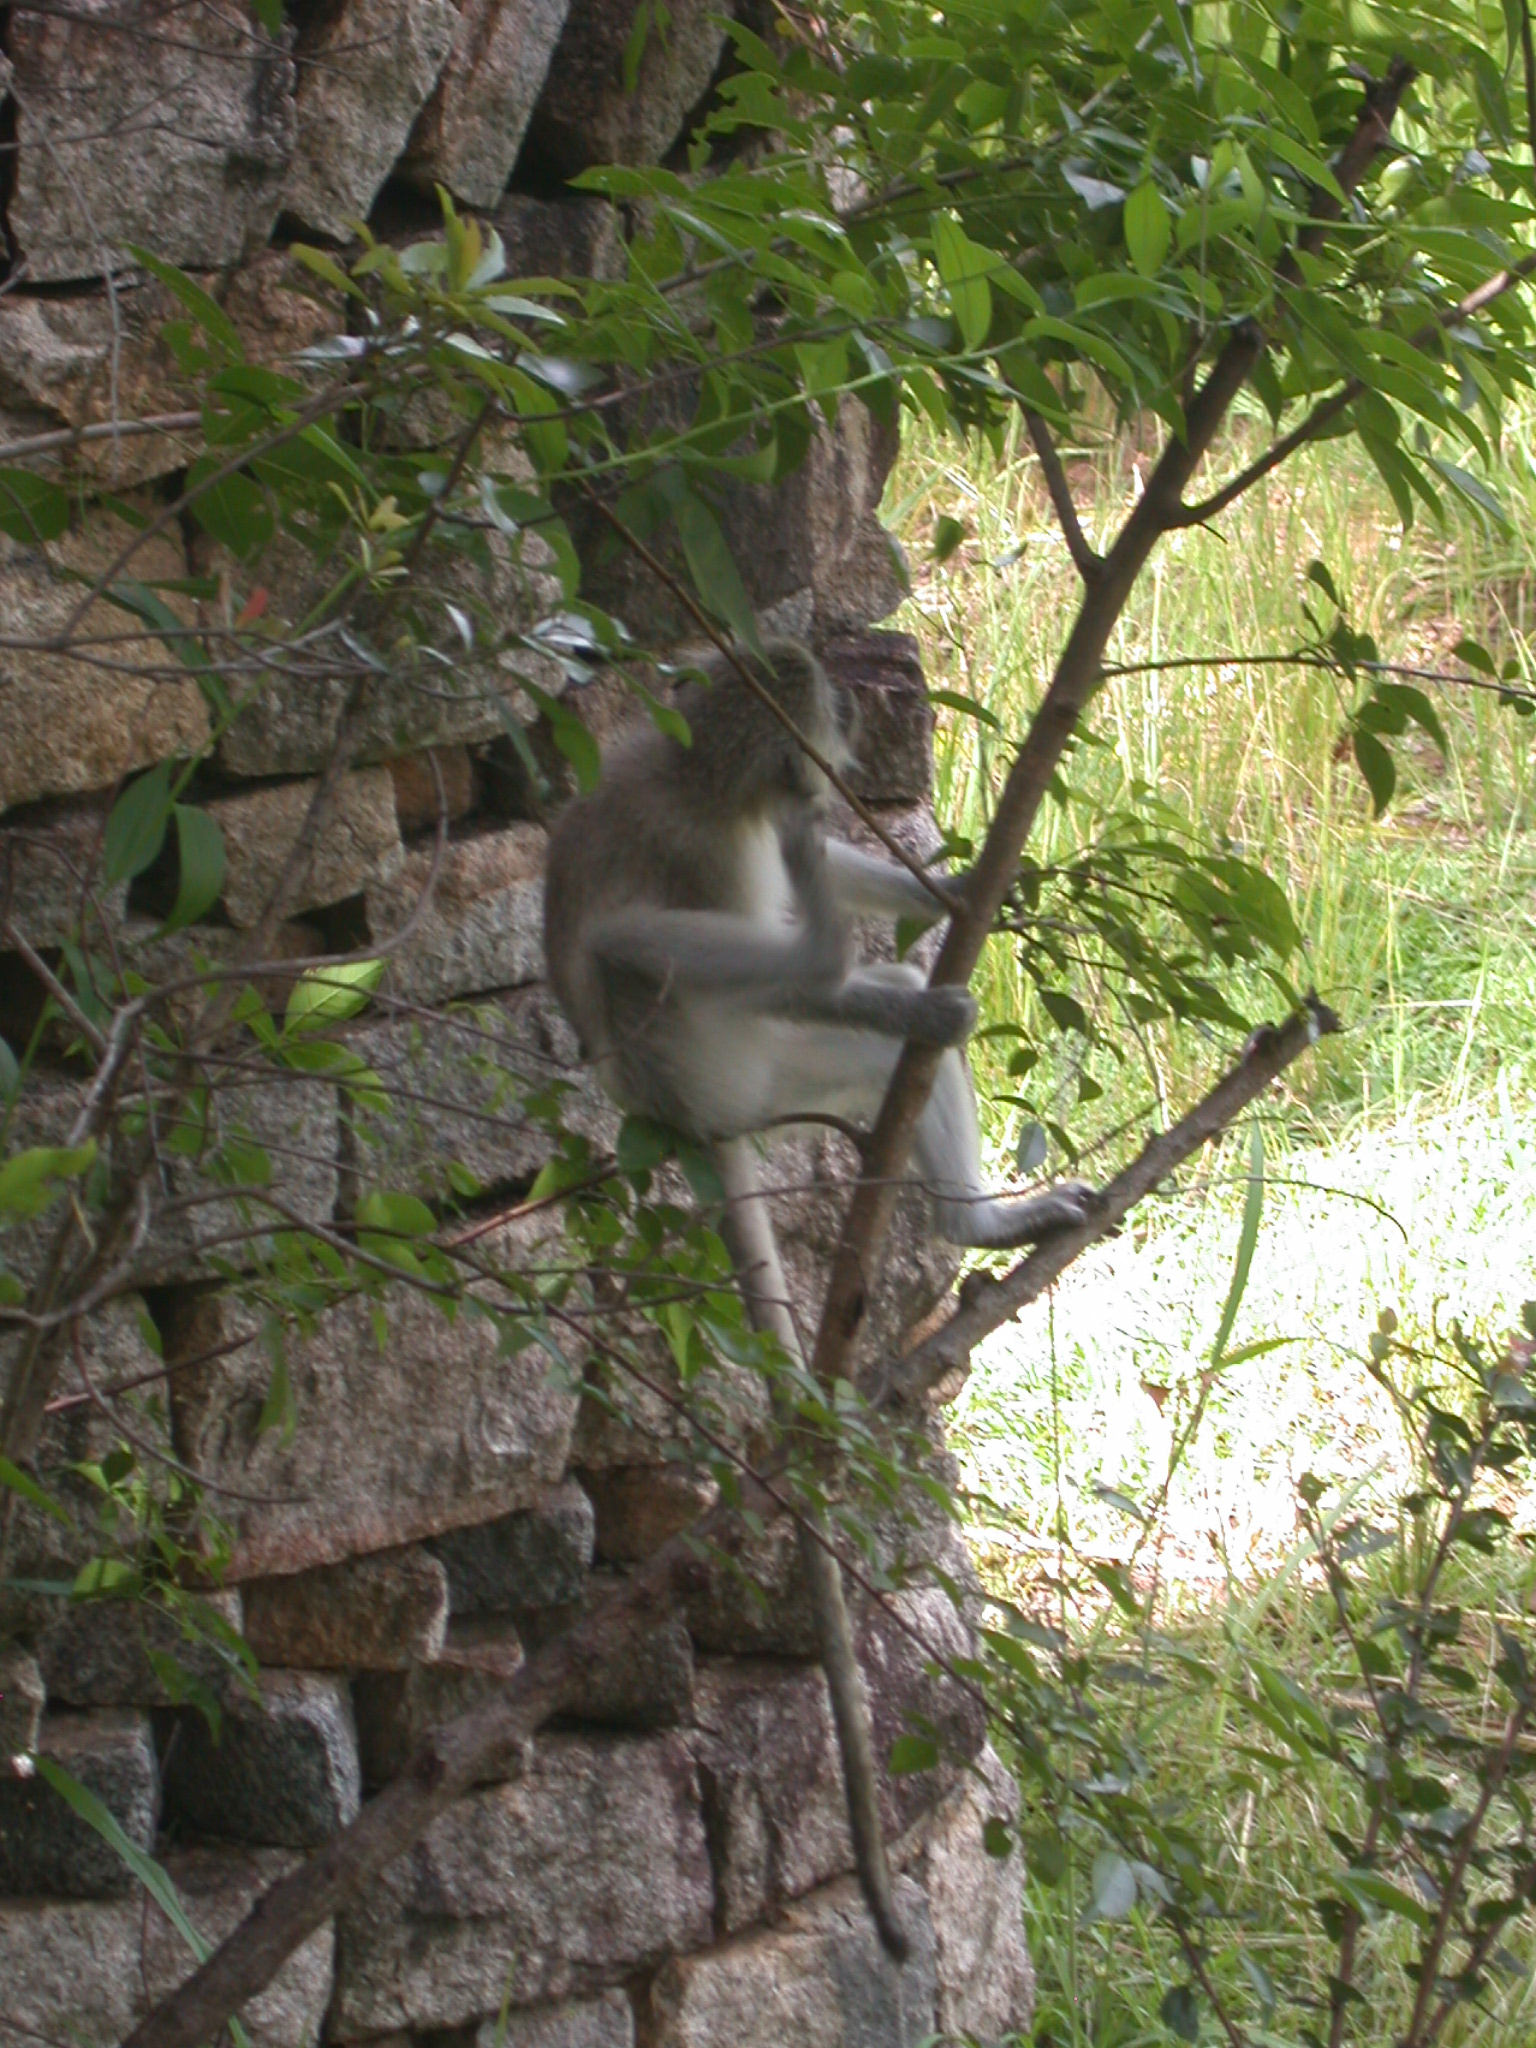 Monkey Climbing Tree in Meadow Outside My Suite at the Ancient City Lodge, Great Zimbabwe, Outside Masvingo, Zimbabwe